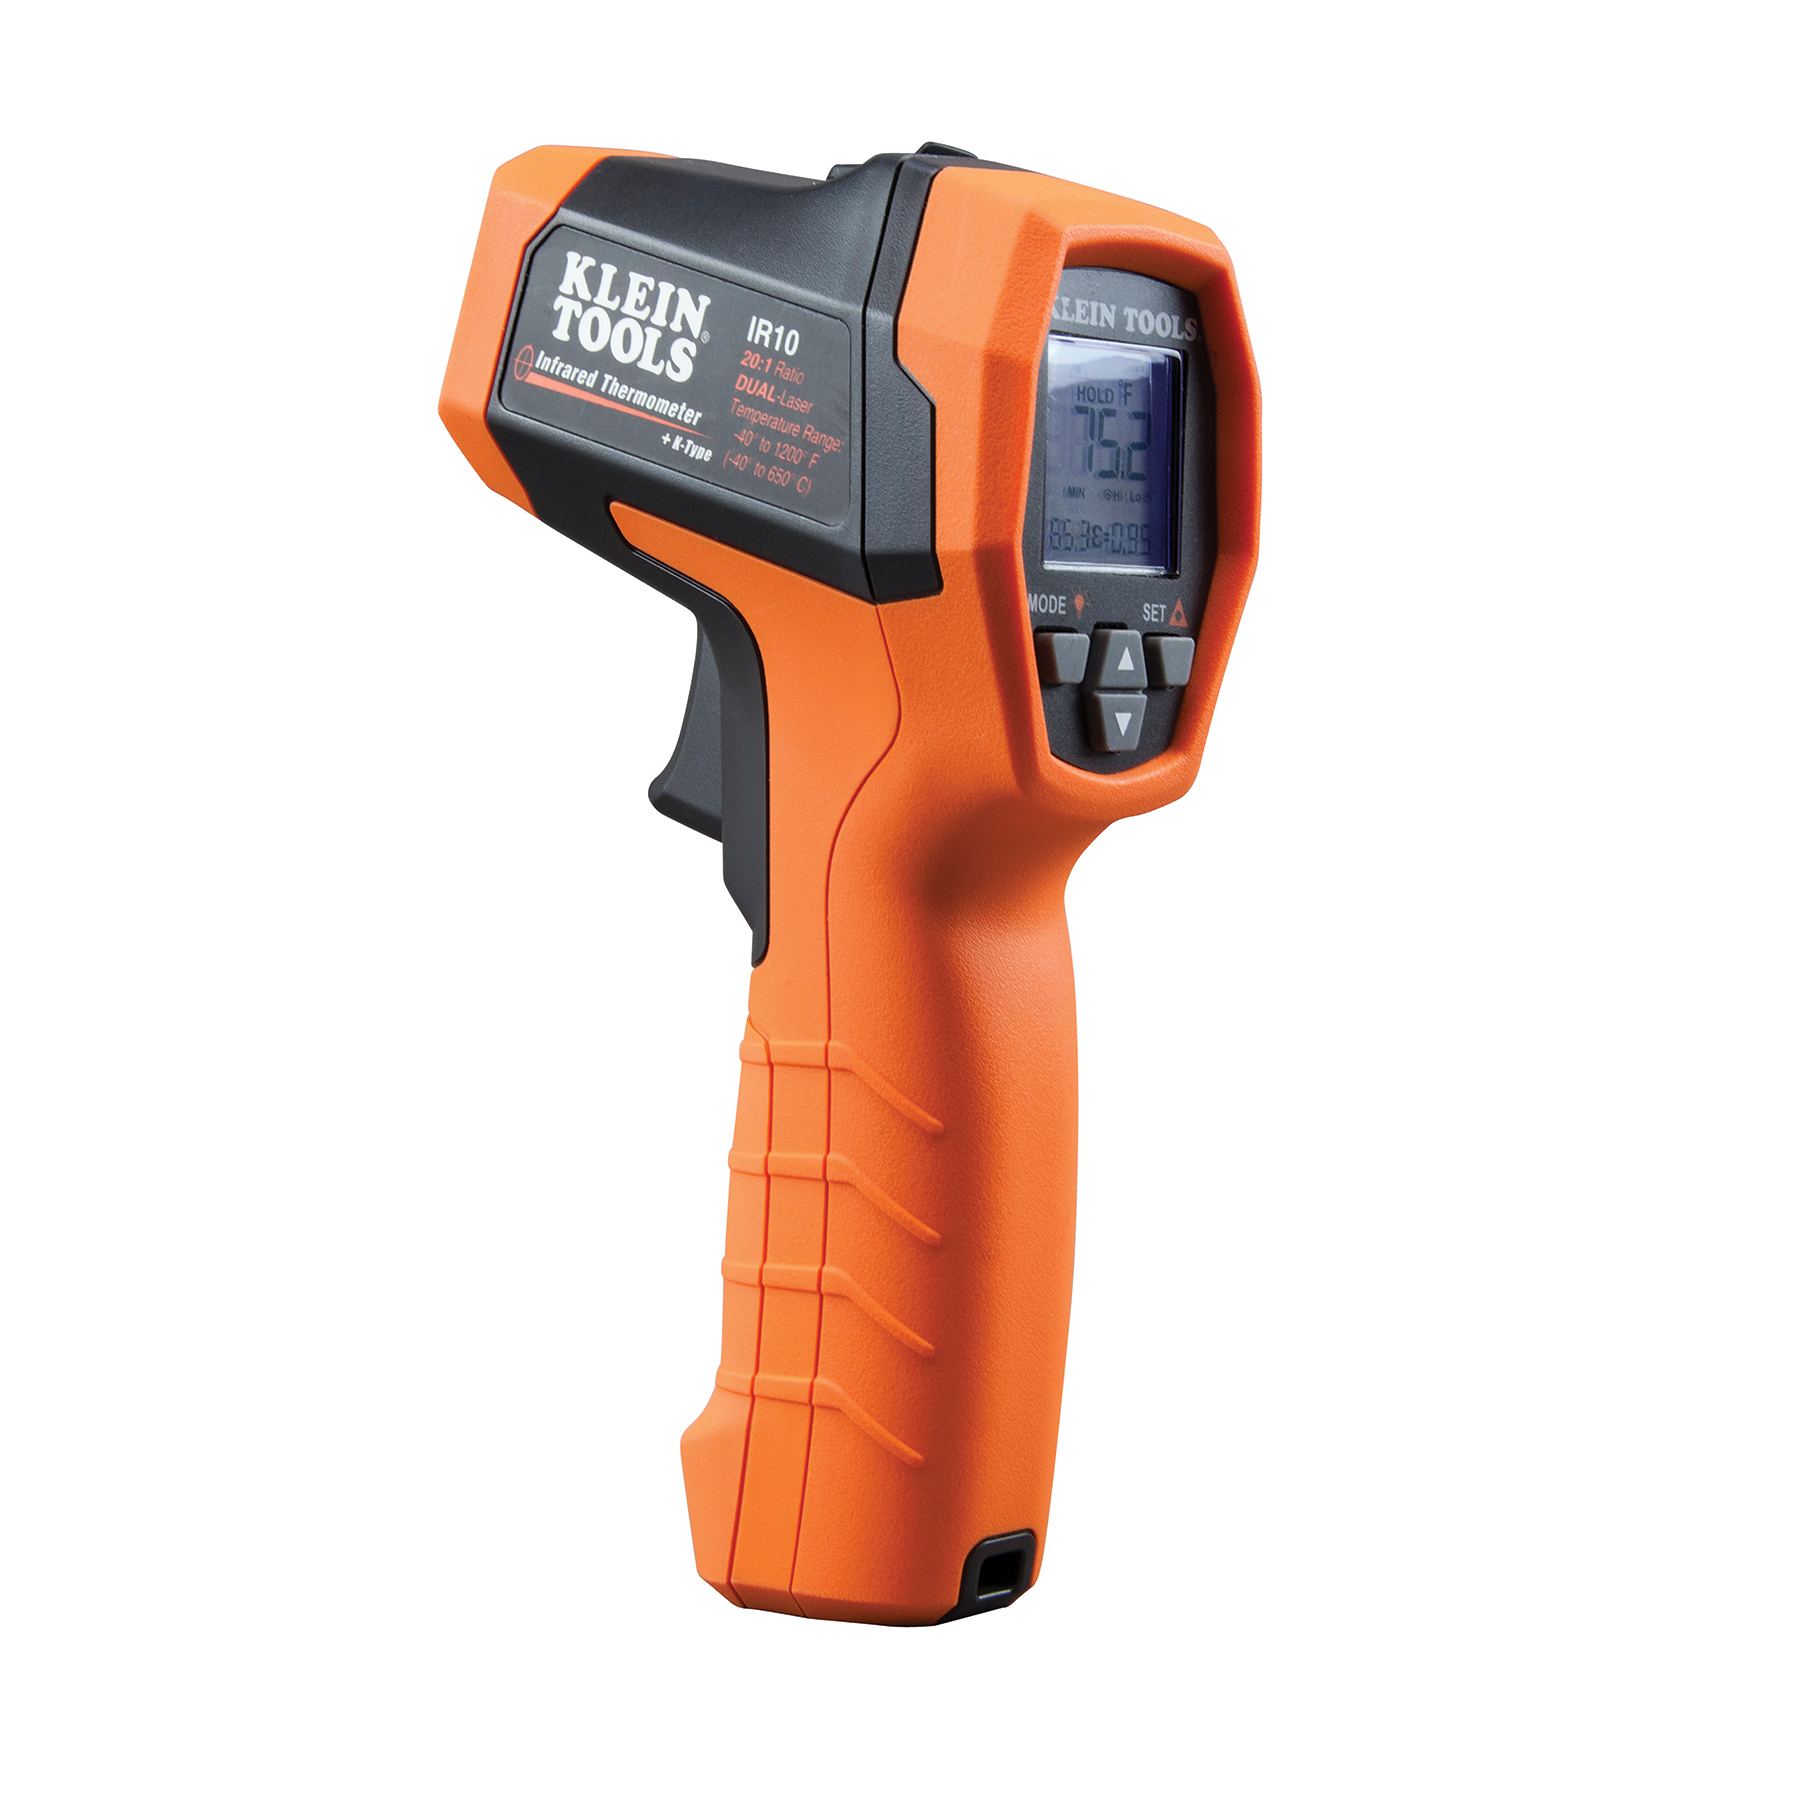 Klein Tools IR10 Infrared Thermometer, Digital Thermometer Gun with Dual Targeting Laser, 20:1